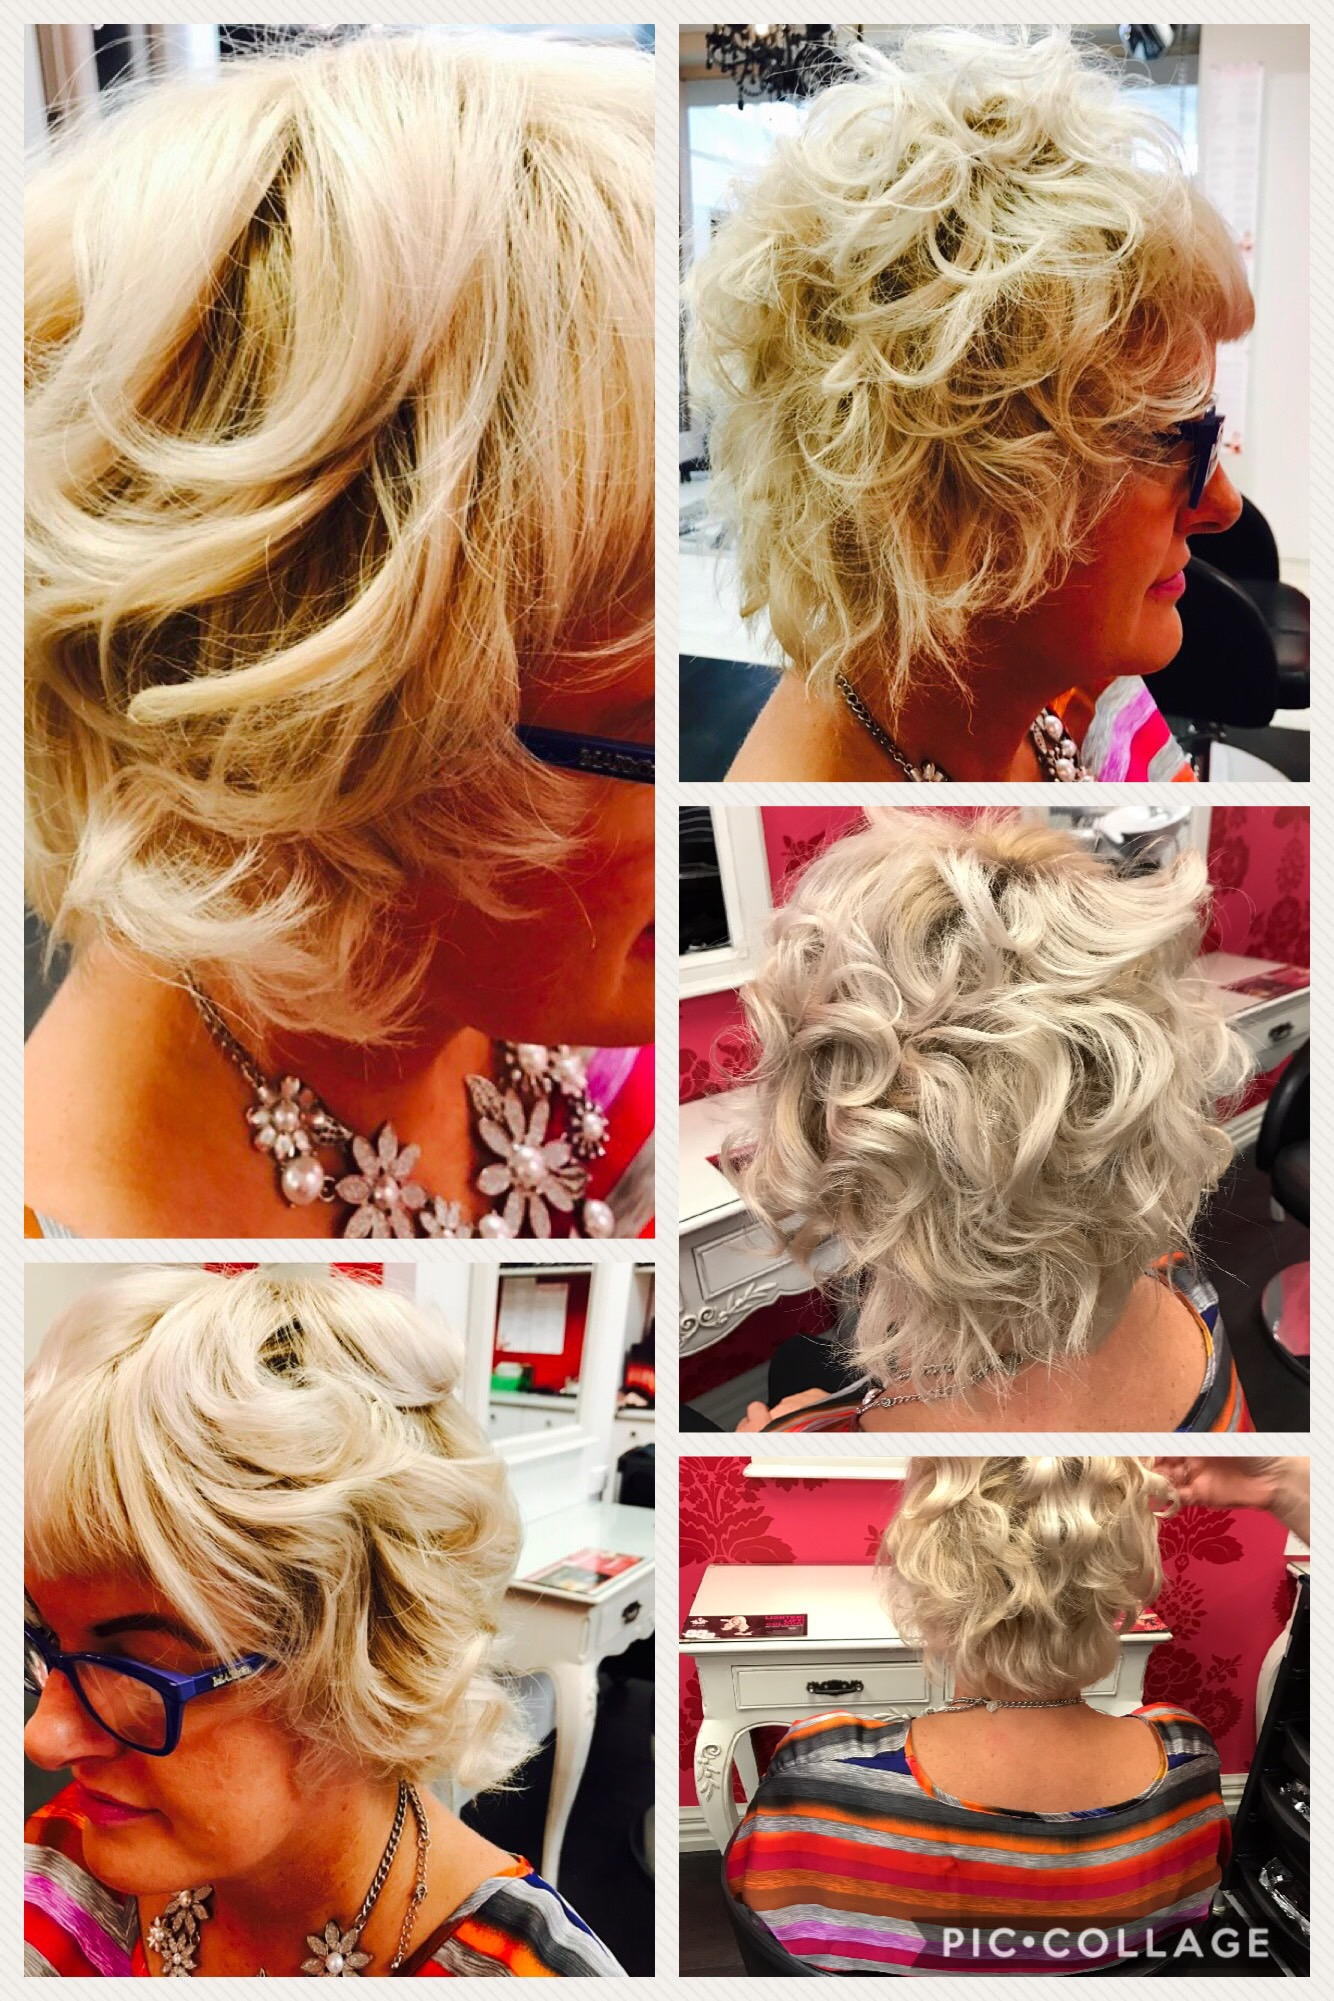 Curls creating style options